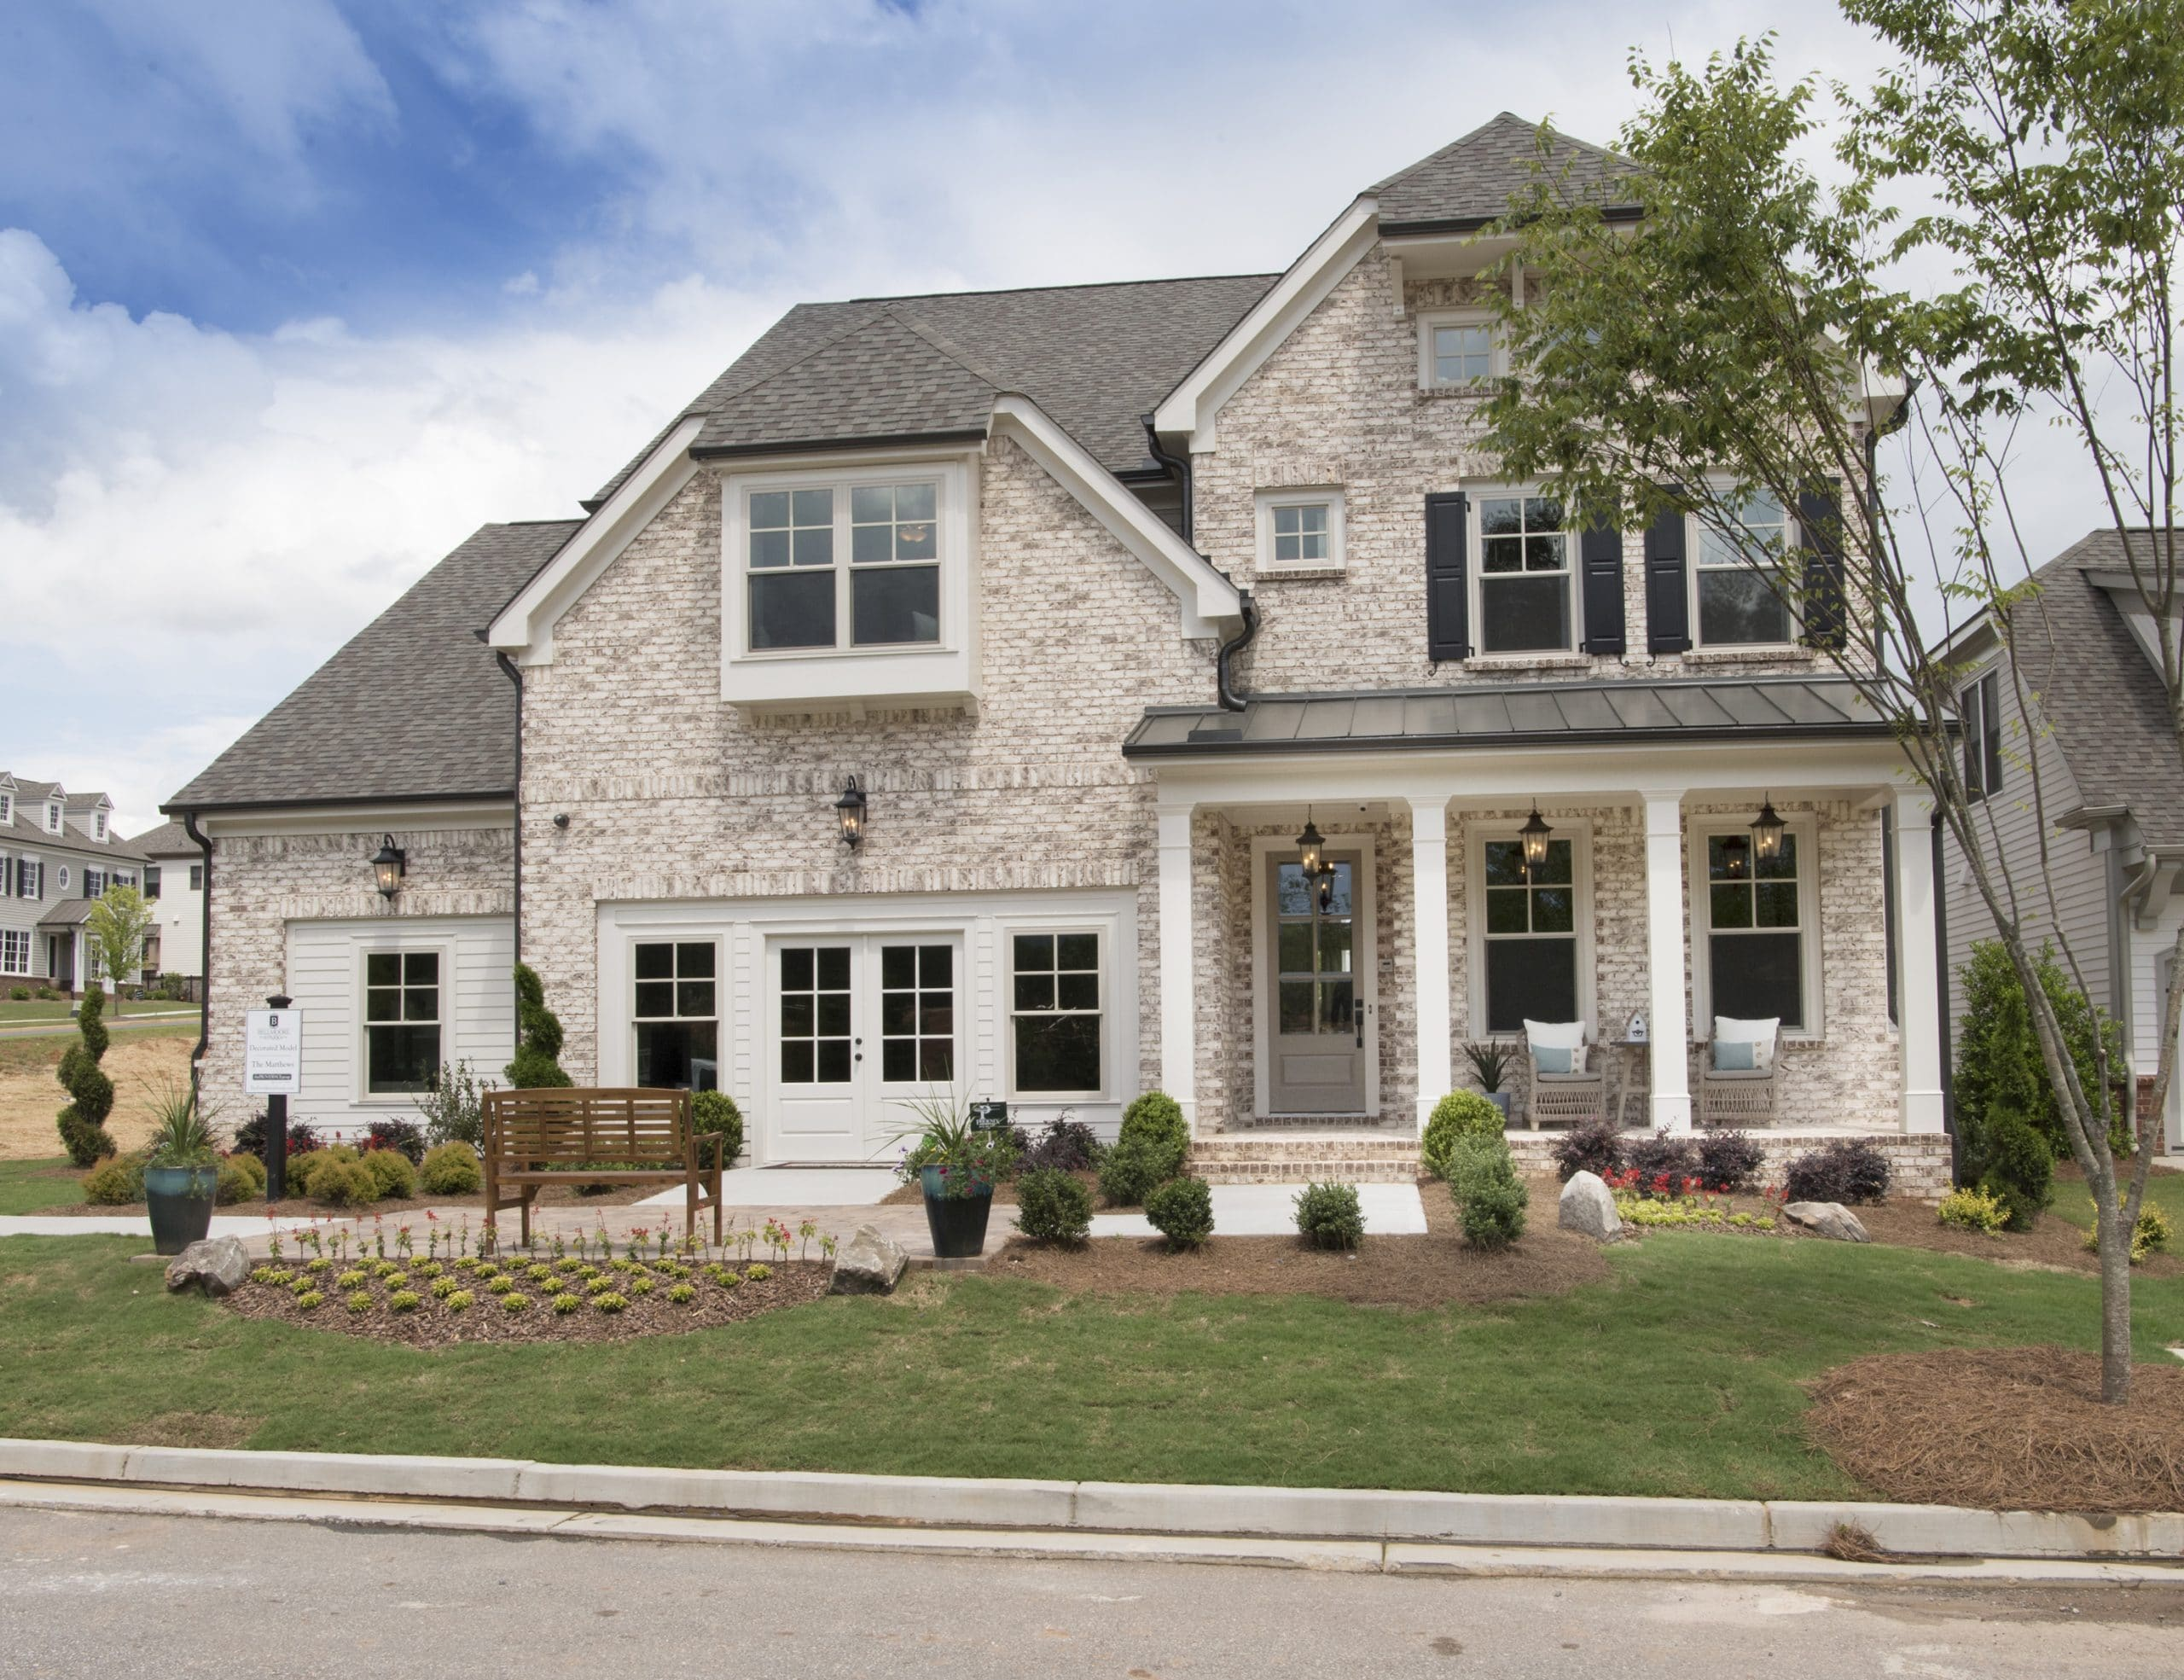 New Johns Creek Homes Coming Soon to Newest Phase at Bellmoore Park